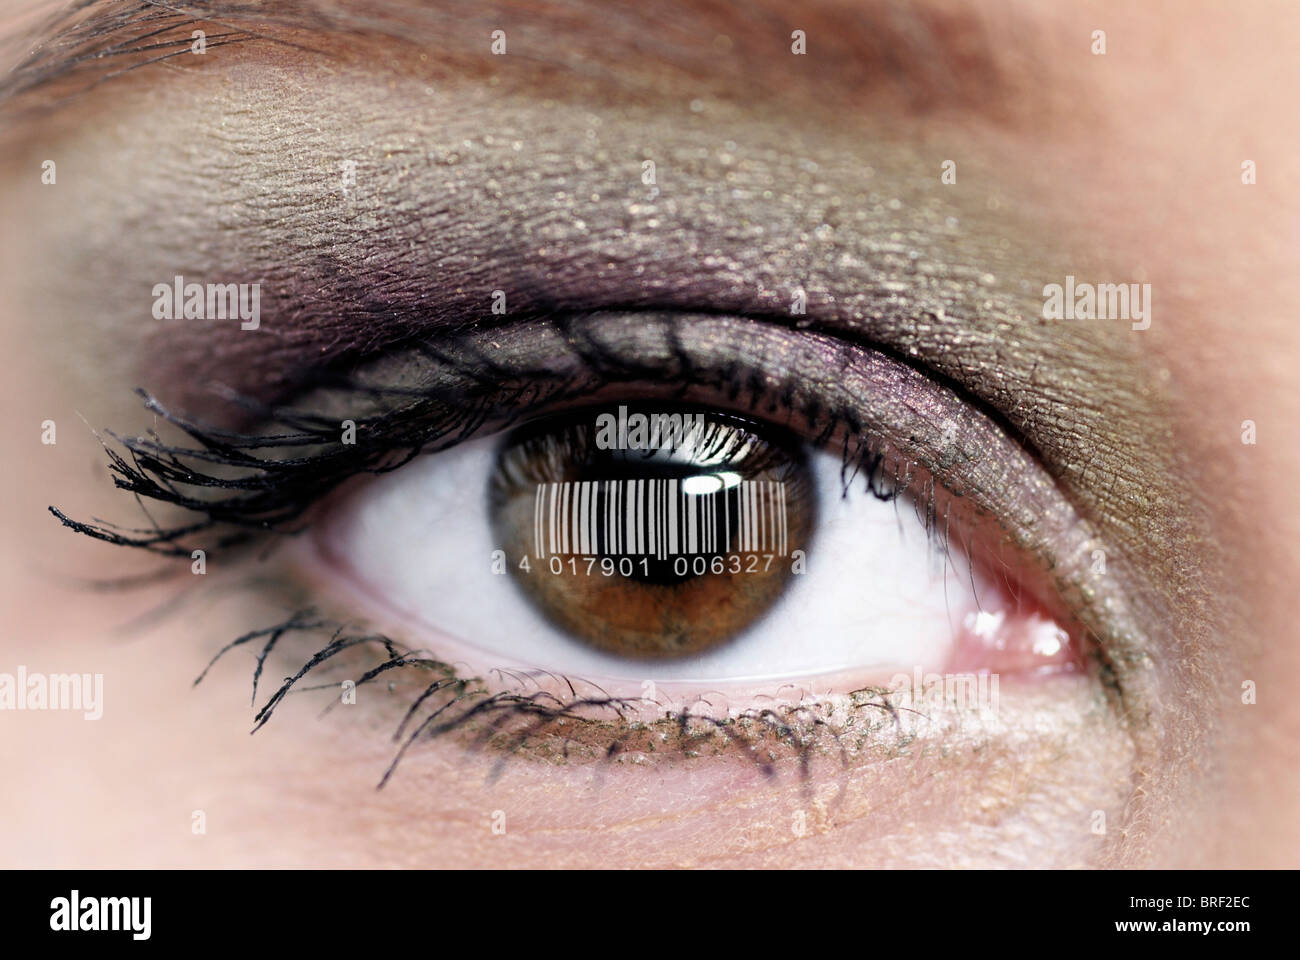 Woman's eye with a barcode, transparent person, population census - Stock Image